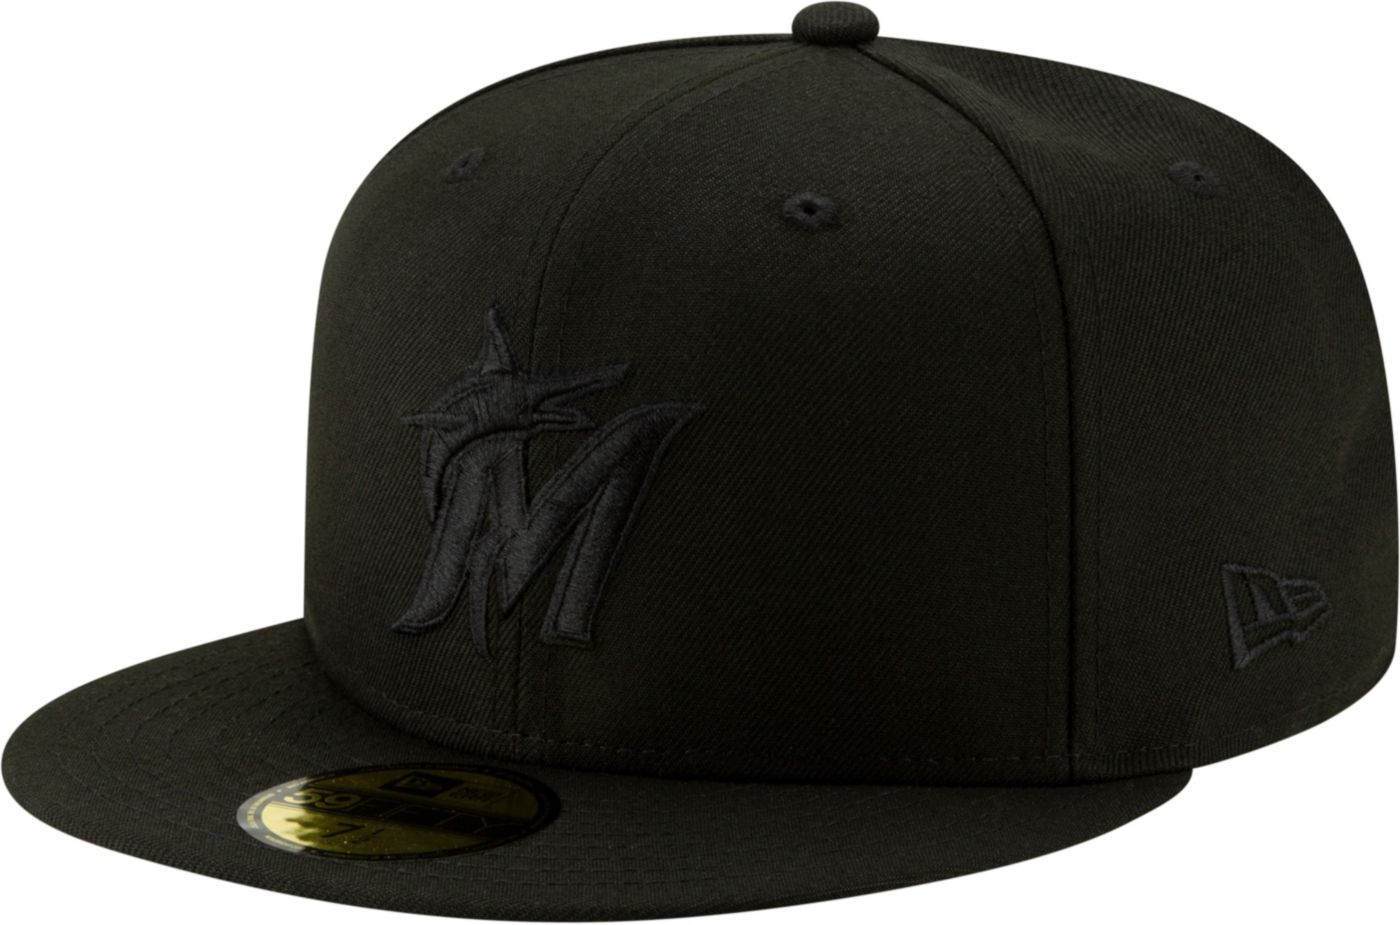 New Era Men's Miami Marlins 59Fifty Black Fitted Hat